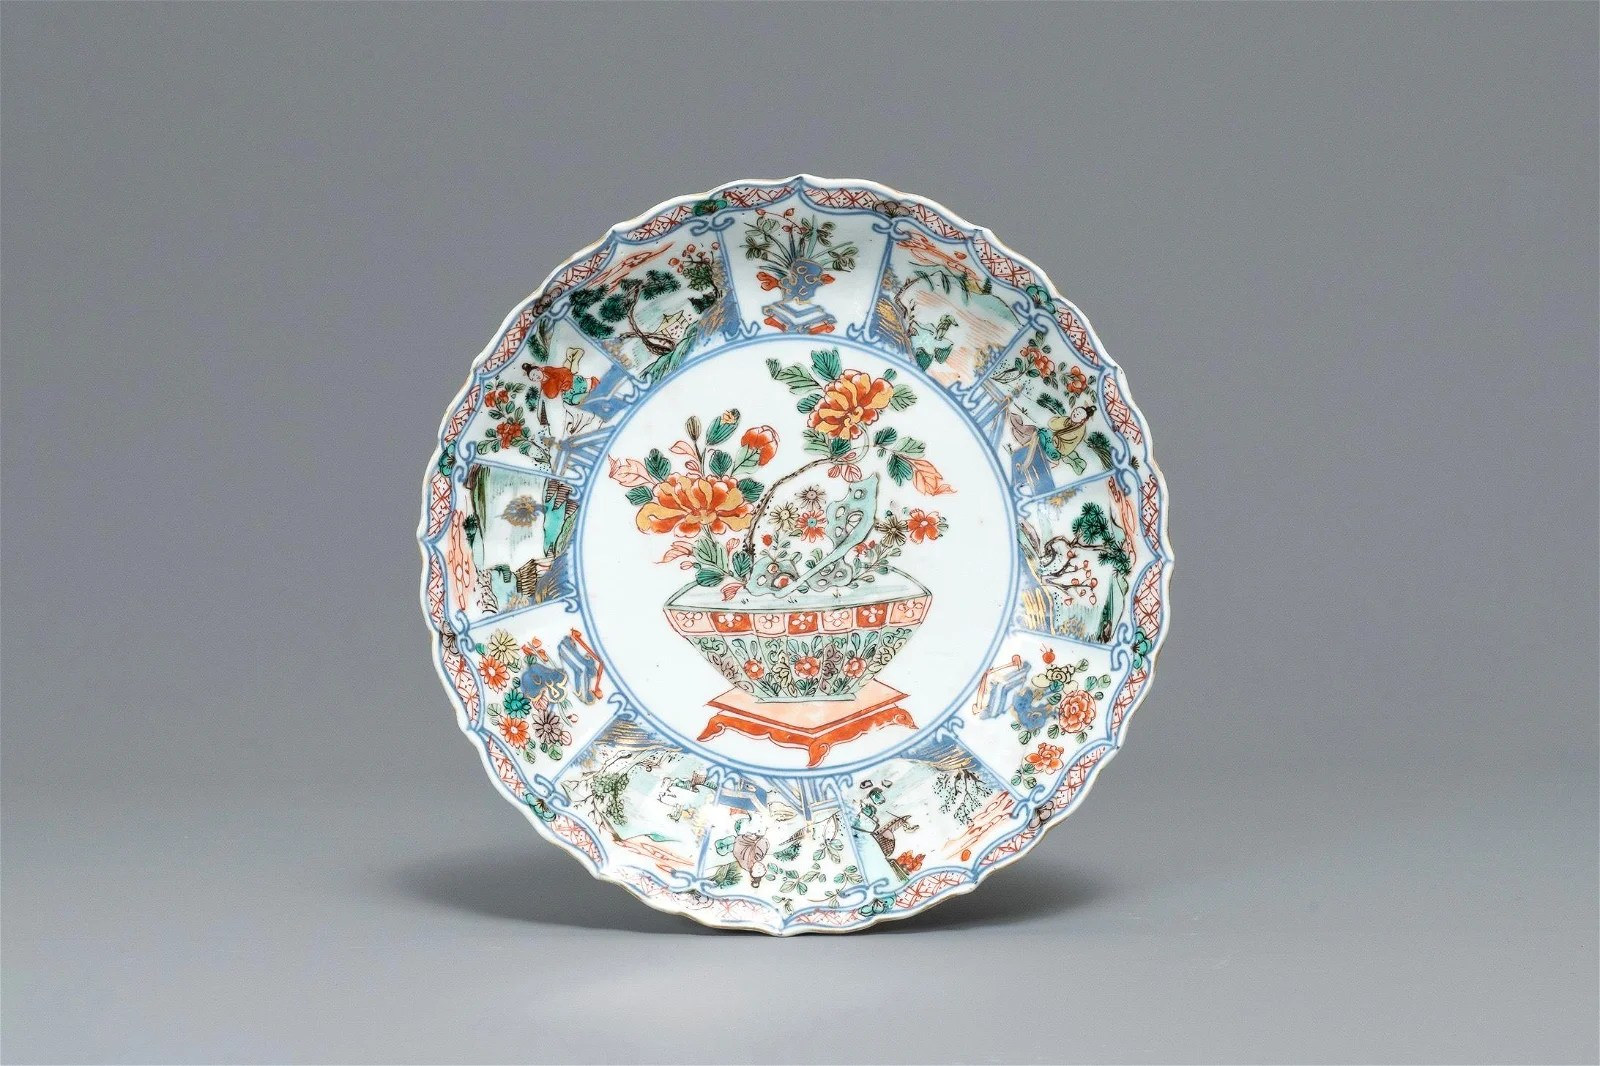 A Chinese famille verte lobed plate with a flowery